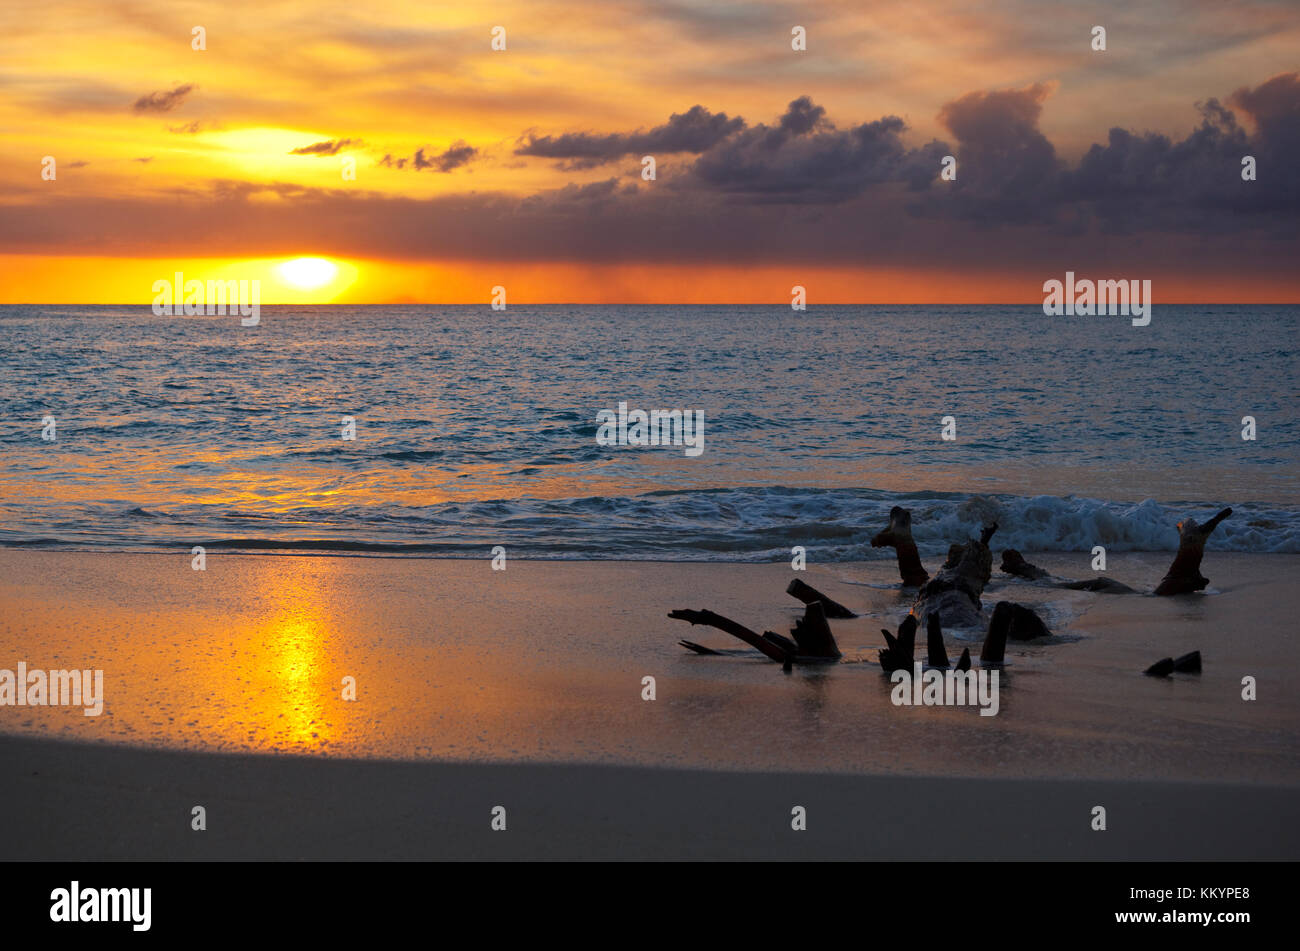 Driftwood at the beach in Antigua at sunset. The ash clouds in front of the sun are from the Soufriere Hills Volcano - Stock Image